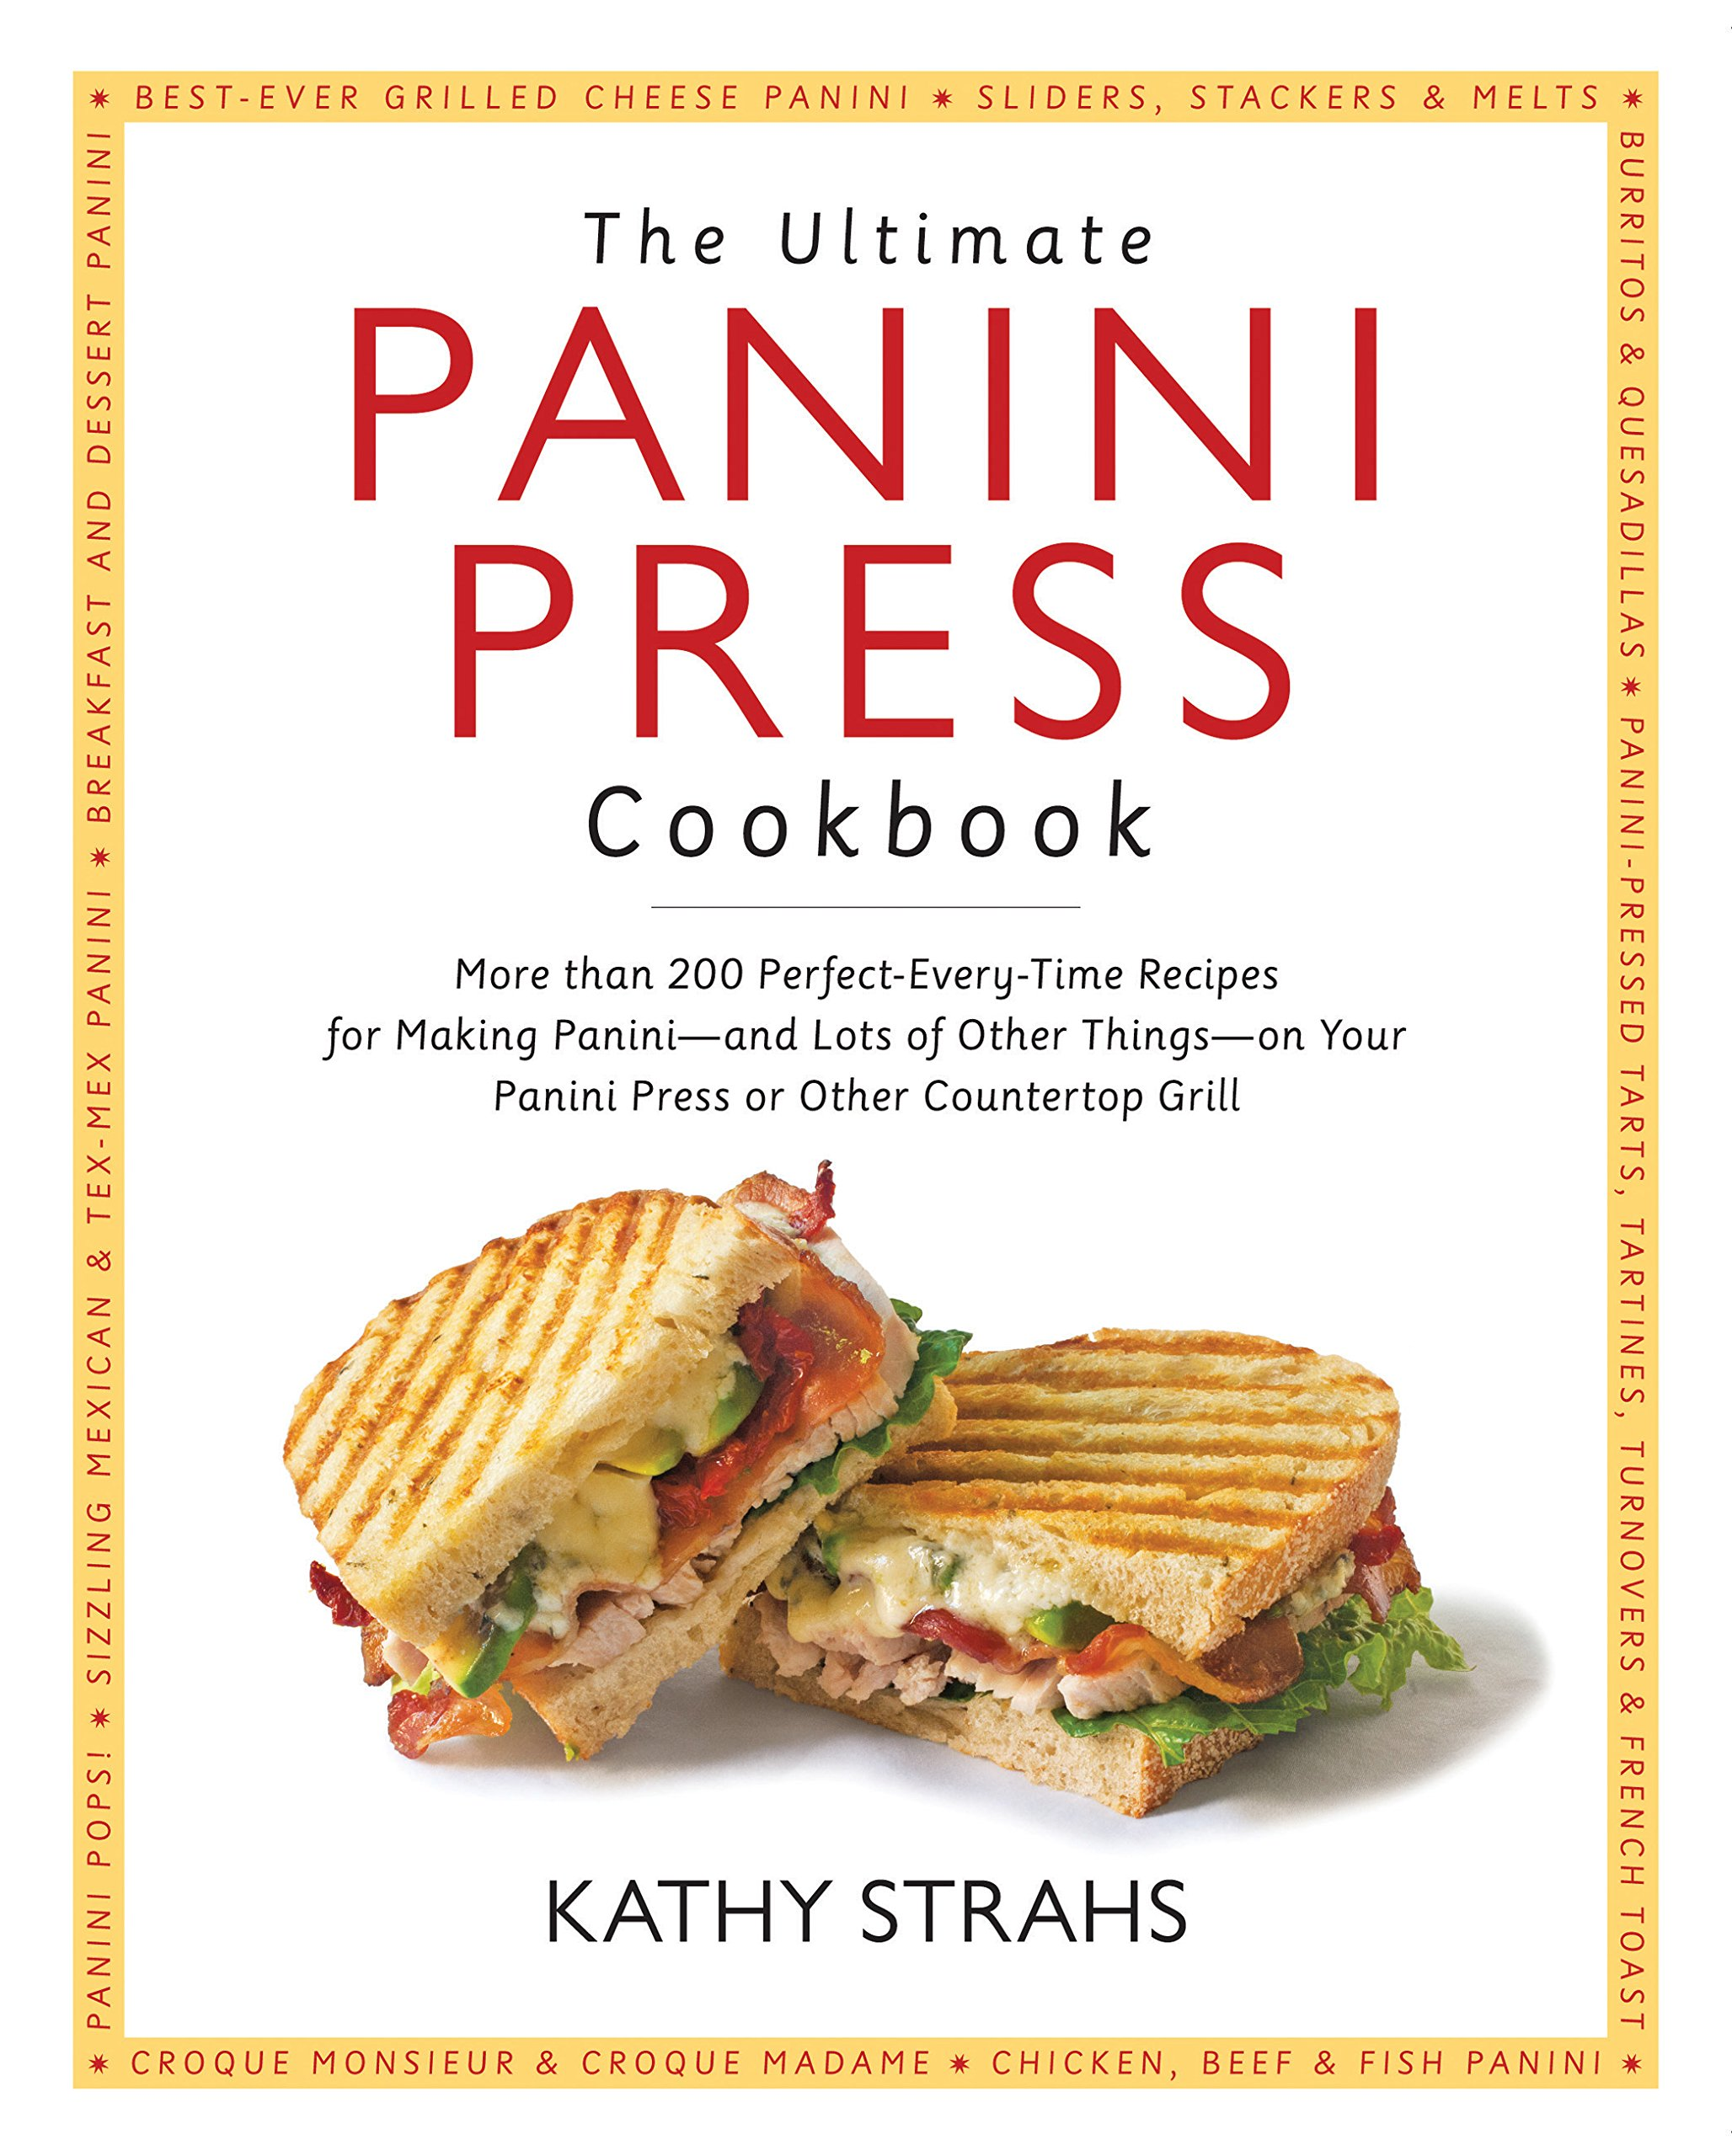 The Ultimate Panini Press Cookbook: More Than 200 Perfect-Every-Time Recipes for Making Panini - and Lots of Other Things - on Your Panini Press or Other Countertop Grill by Brand: Harvard Common Press